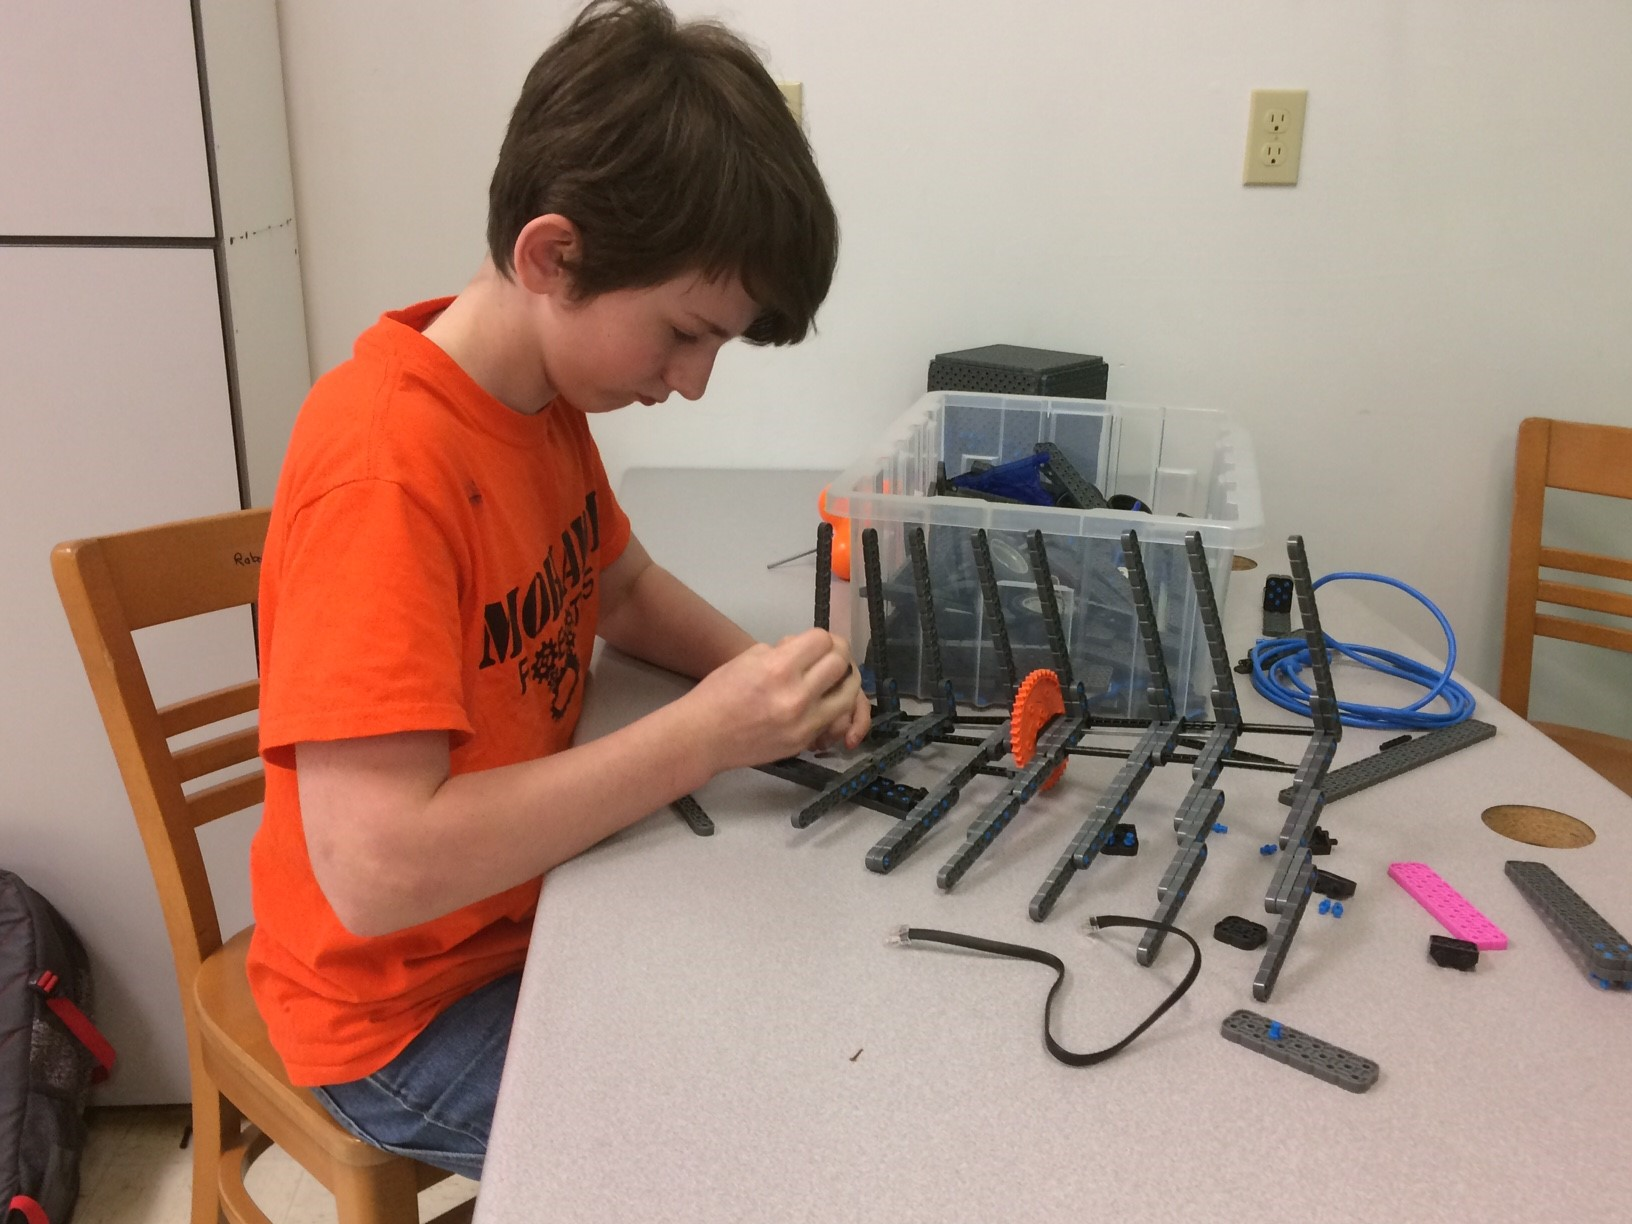 Just 126 students go to class at Mohawk middle and high schools, but nearly 50 of those kids call the robotics classroom home. (SBG)